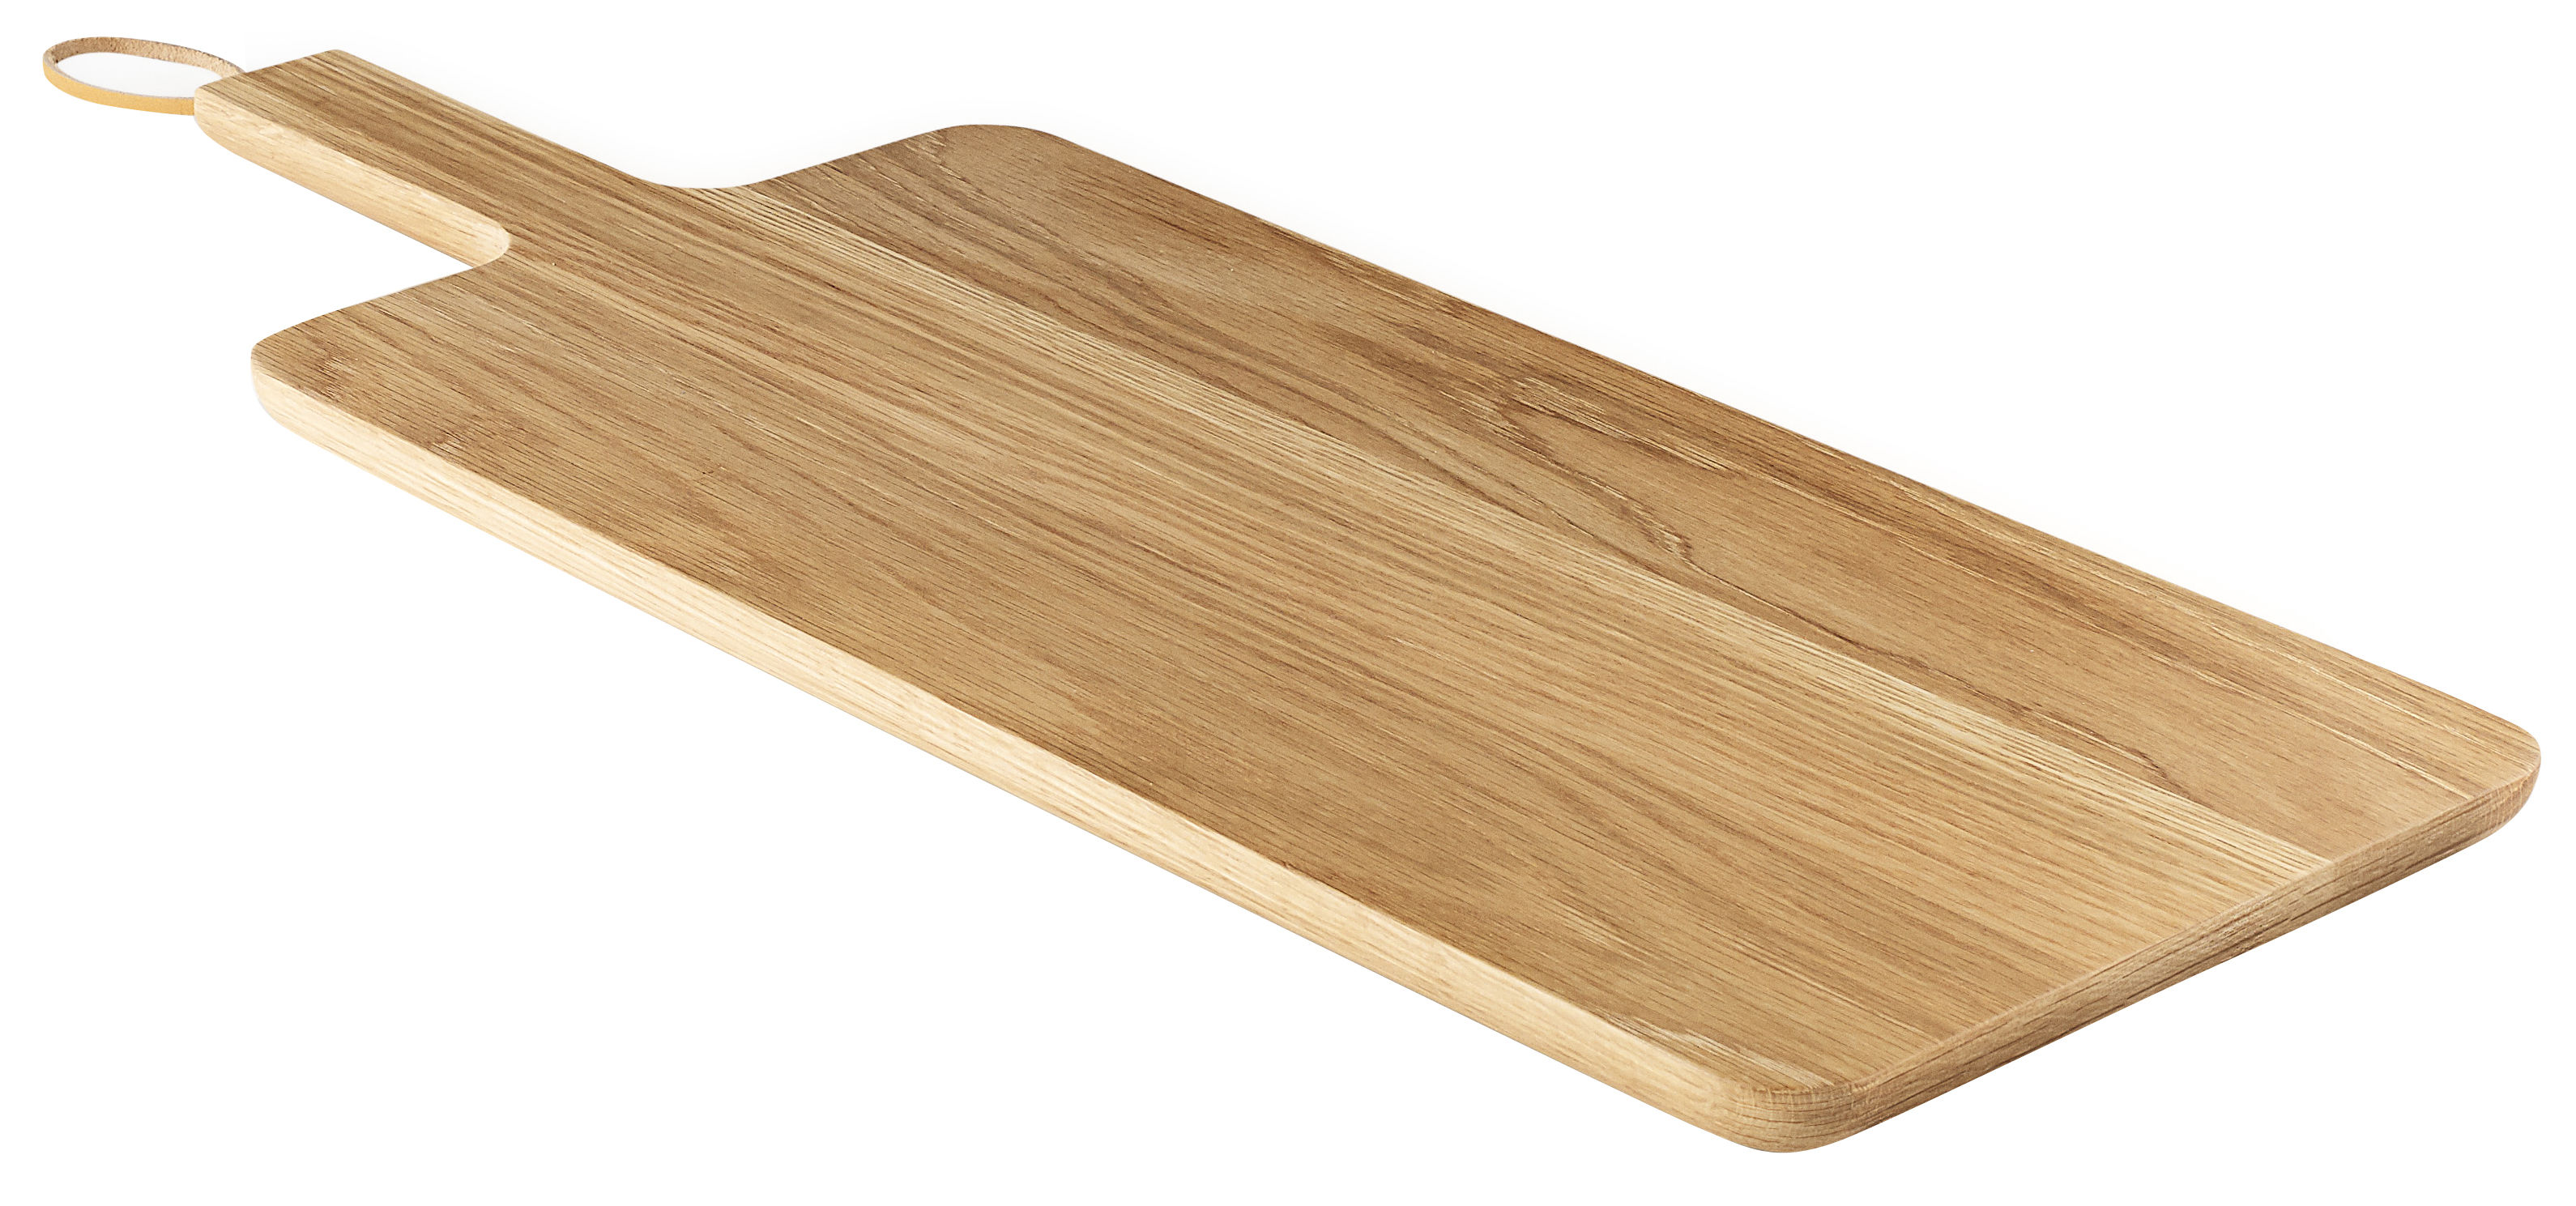 Kitchenware - Kitchen Equipment - Nordic Kitchen Chopping board - Oak - 22 x 44 cm by Eva Solo - Oak / 22 x 44 cm - Leather, Oak